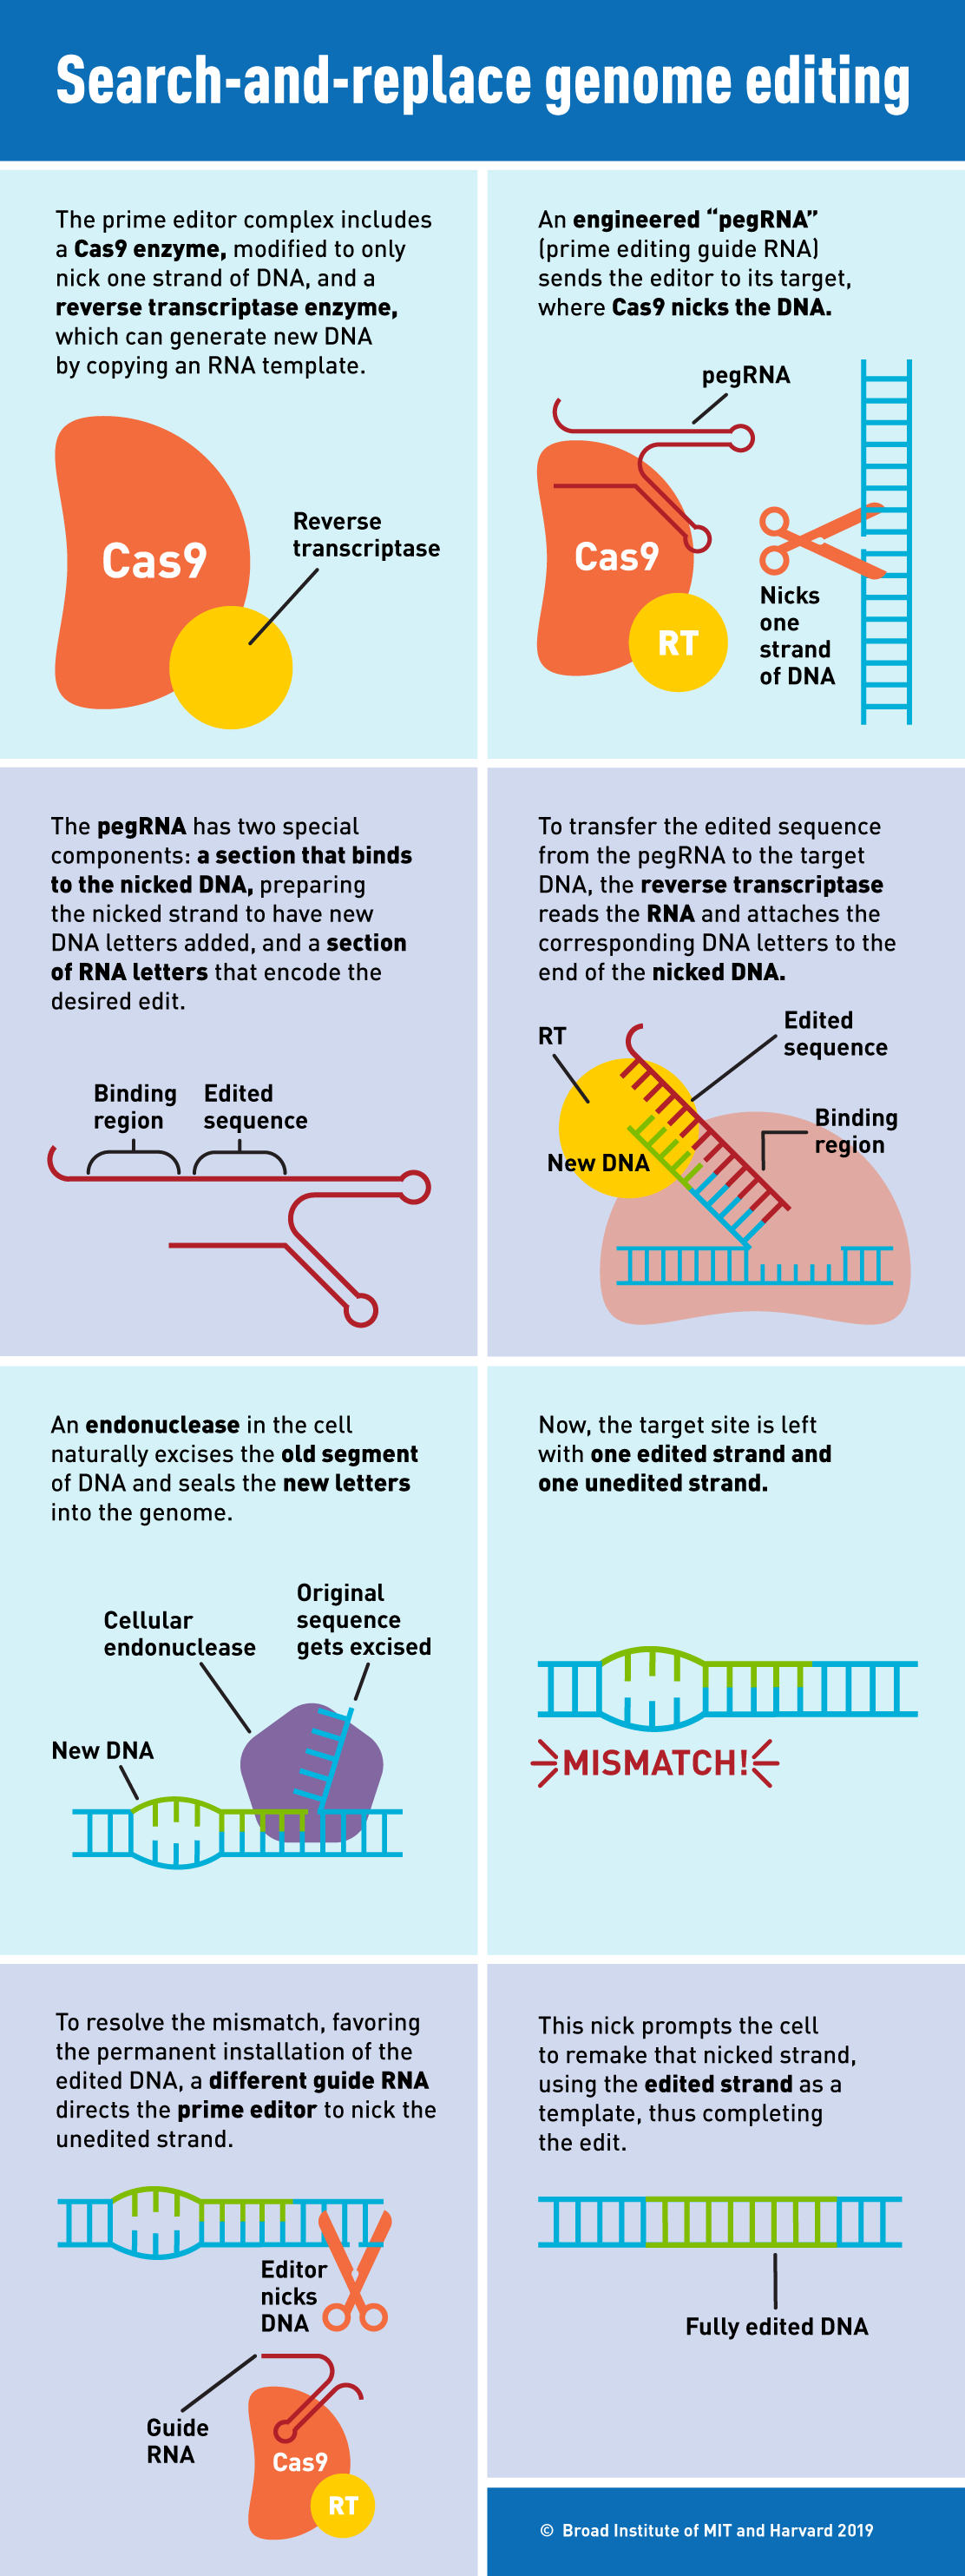 cancer and genetic defects are examples of